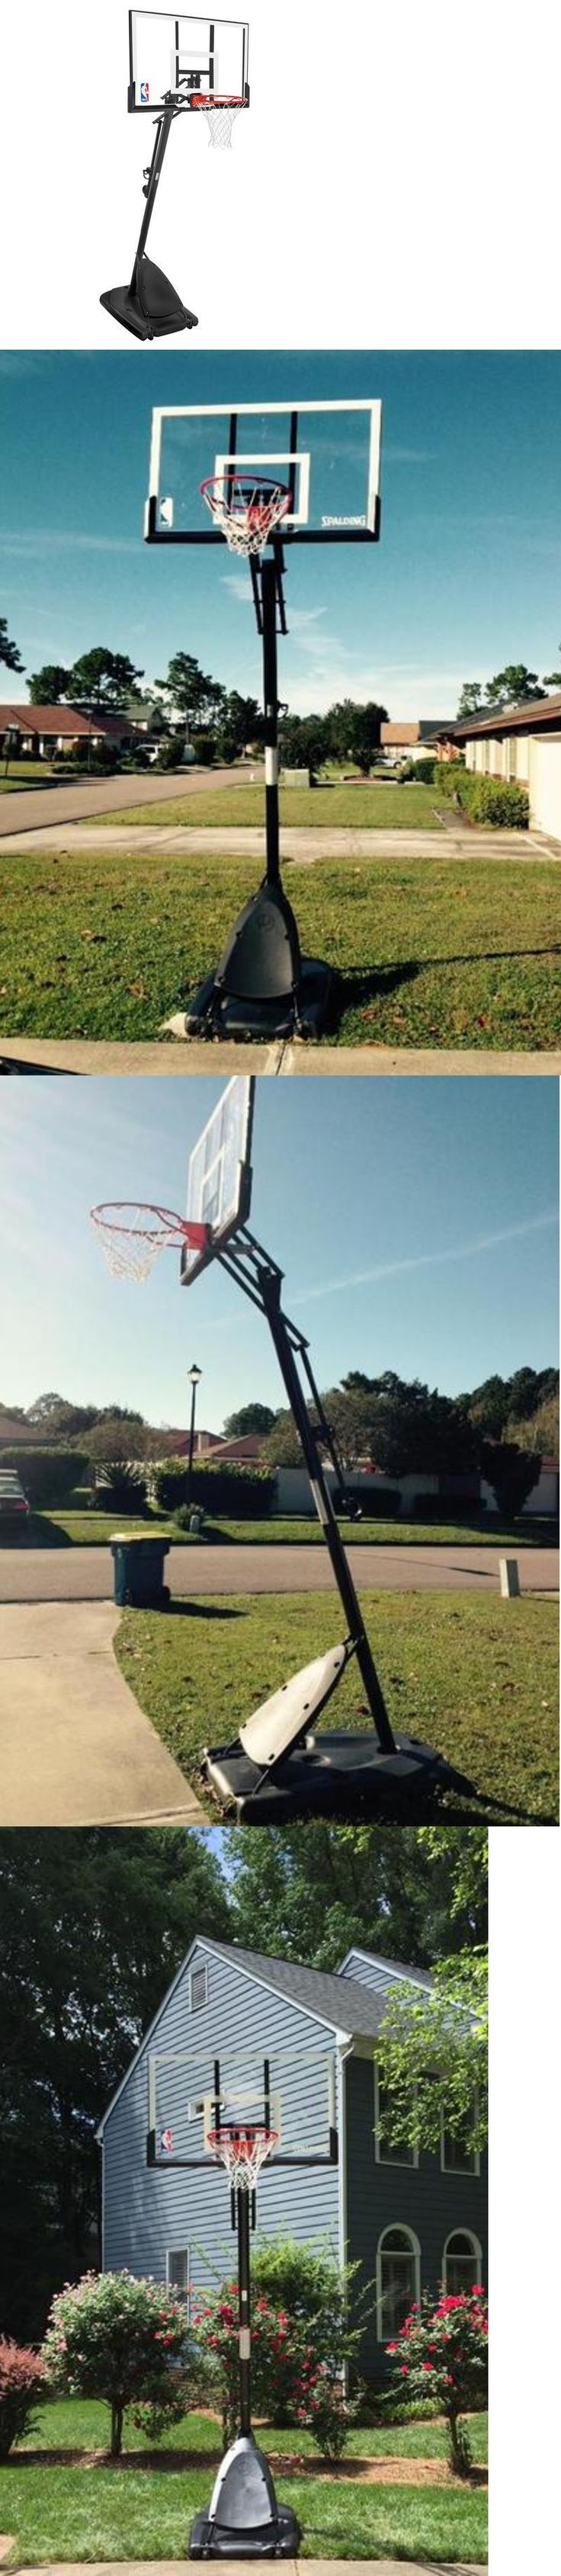 Basketball: Nba Portable Basketball Hoop System Basketball System Spalding 54 Acrylic New -> BUY IT NOW ONLY: $329.97 on eBay!